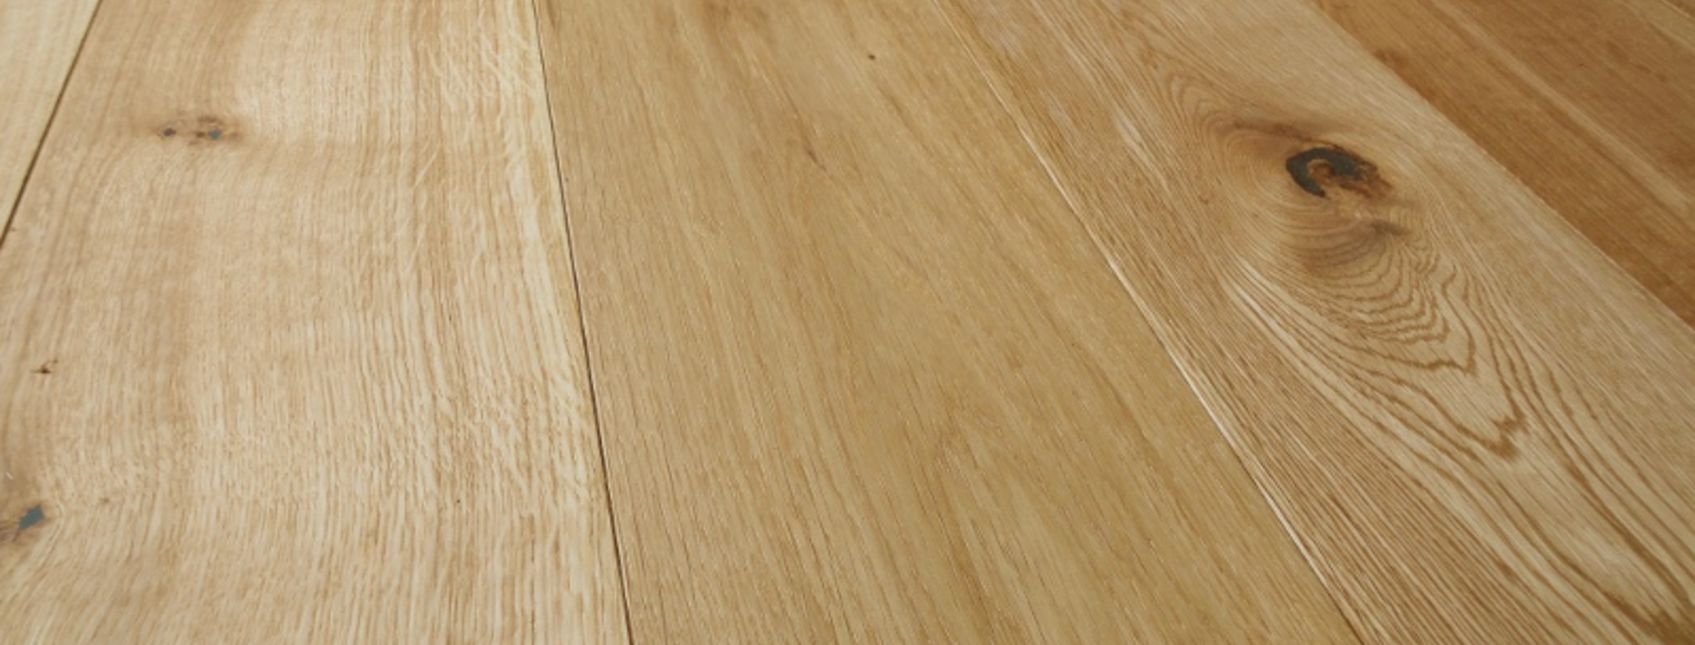 Treated country range oak flooring